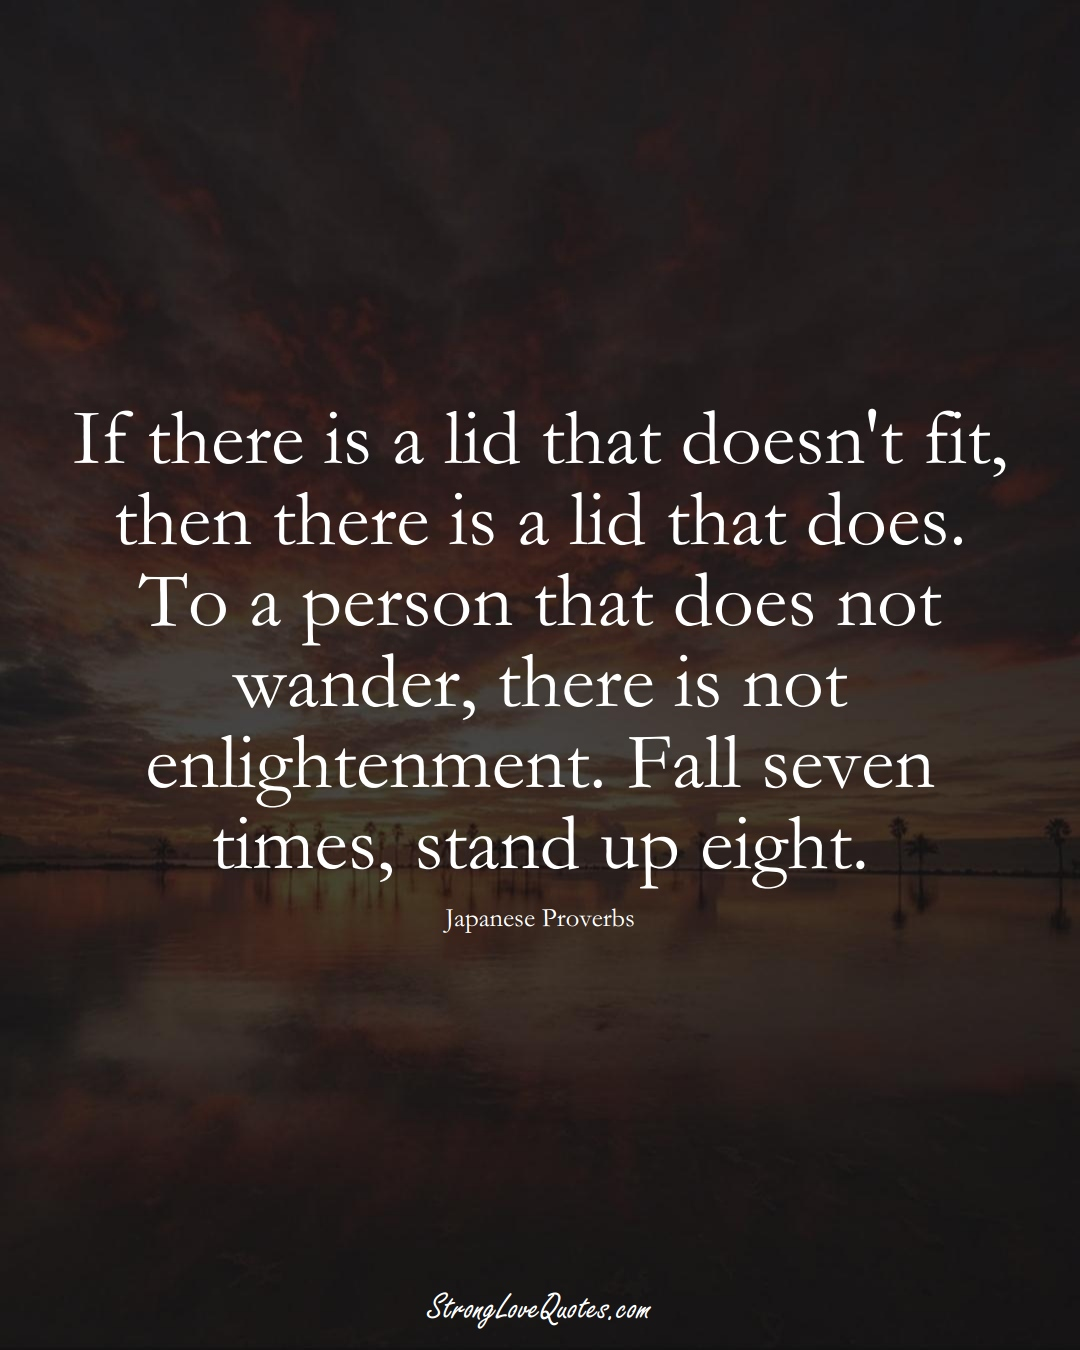 If there is a lid that doesn't fit, then there is a lid that does. To a person that does not wander, there is not enlightenment. Fall seven times, stand up eight. (Japanese Sayings);  #AsianSayings